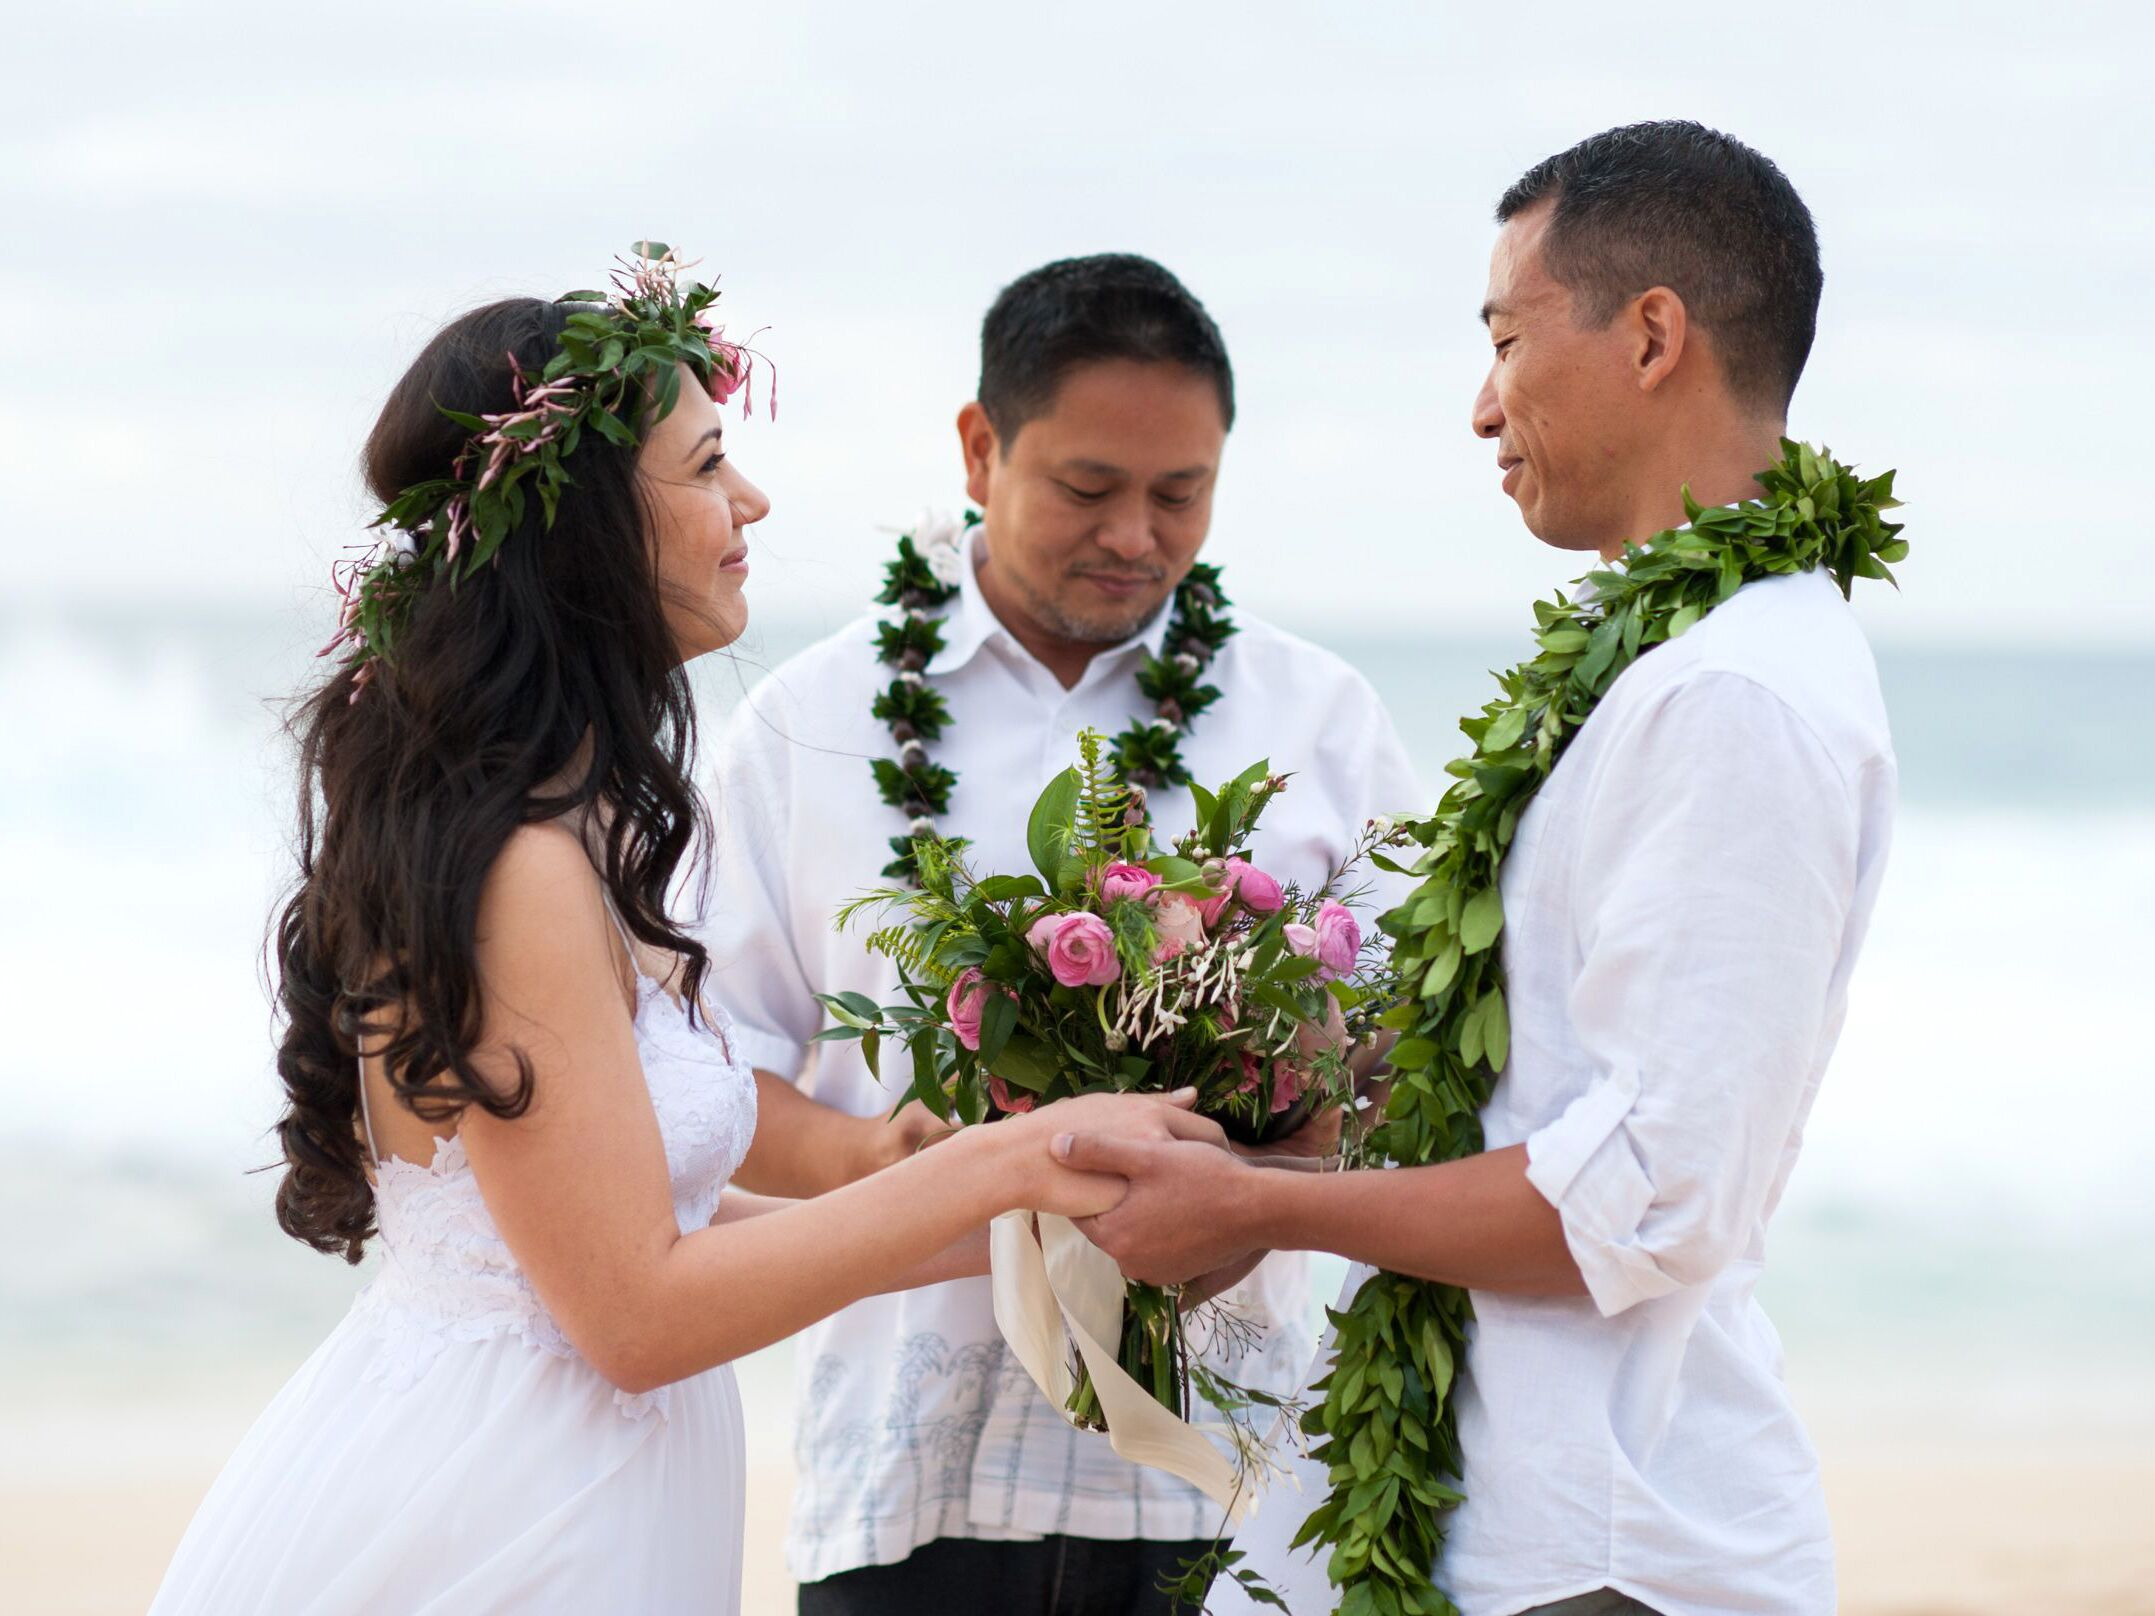 Elopement Wedding 101 How To Plan An Right